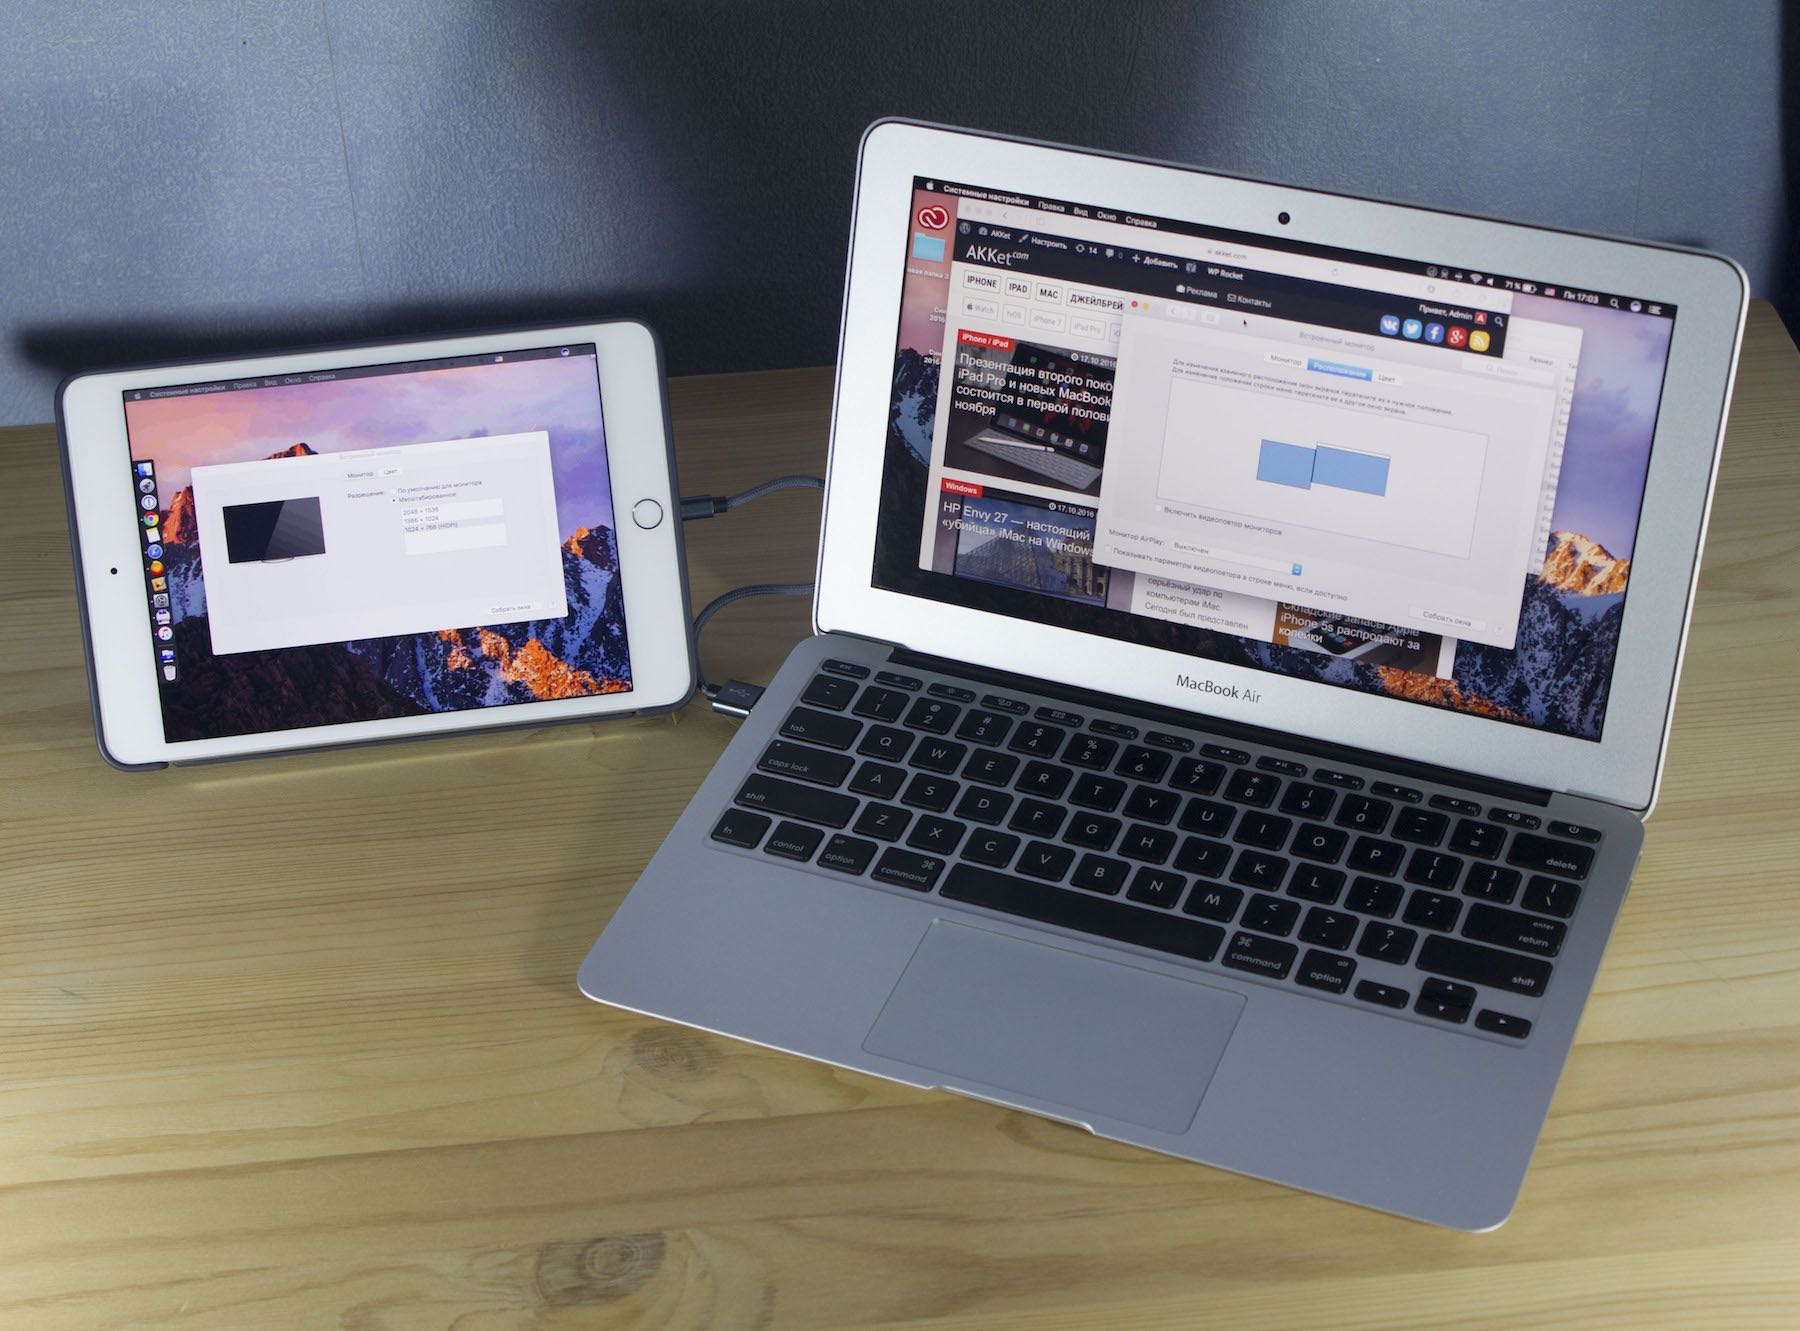 Duet Display Review AKKet.com iPad iPhone macOS Sierra 3 8